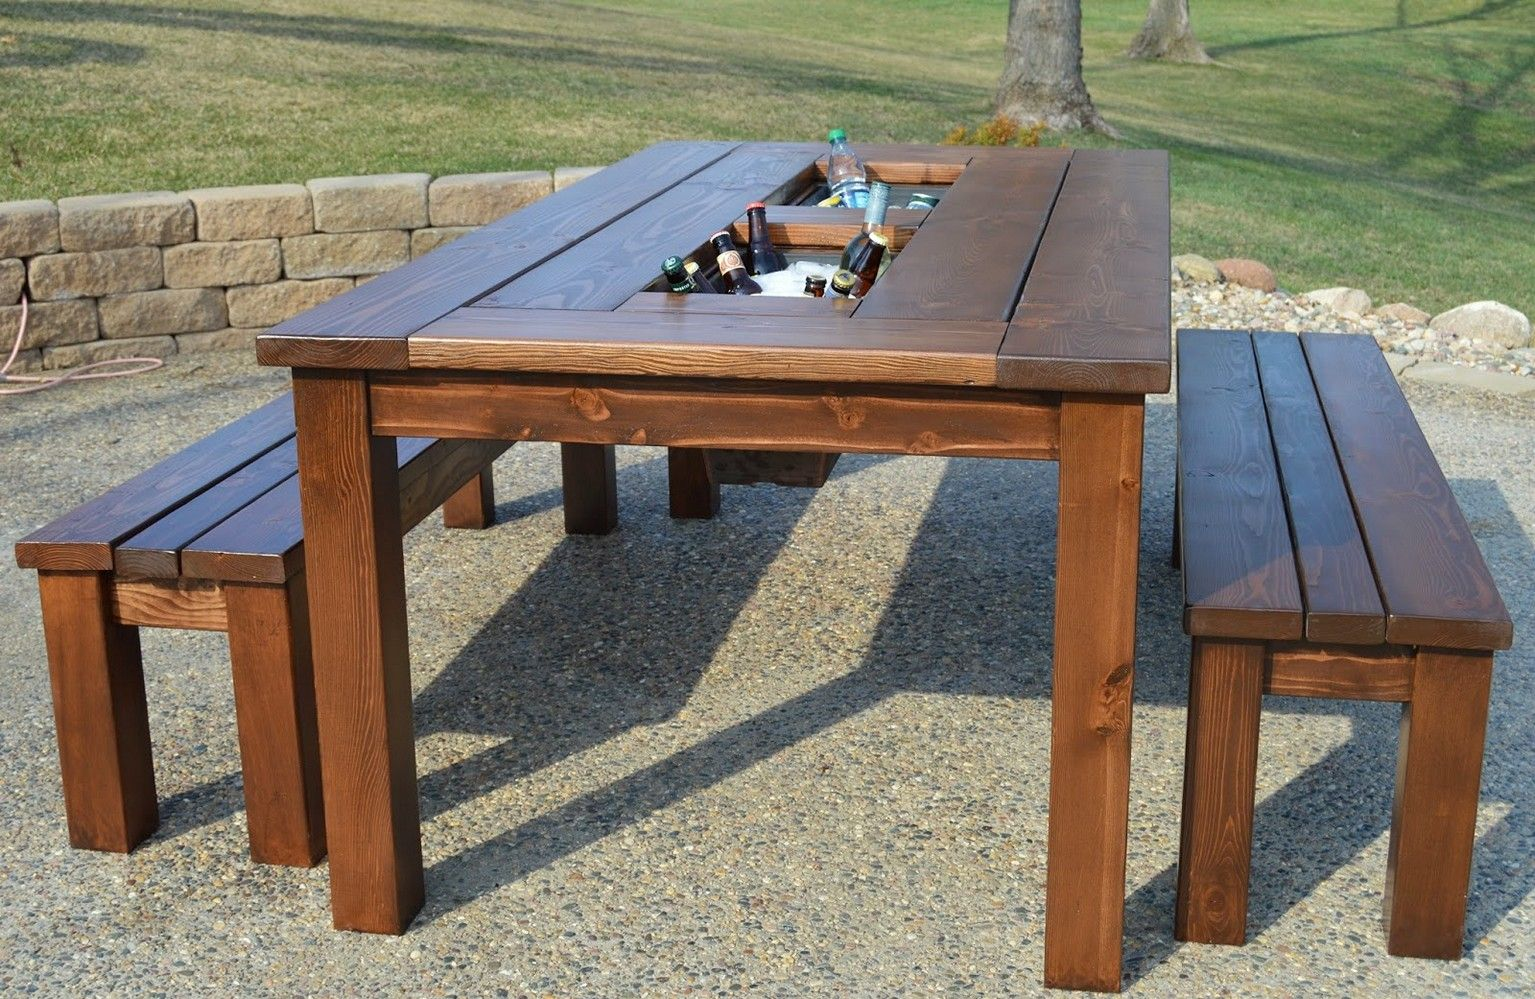 Remodelaholic Build A Patio Table With Builtin Ice Boxes Description From Junetdougherty Com I Searched For Th Wooden Outdoor Table Diy Patio Table Diy Patio